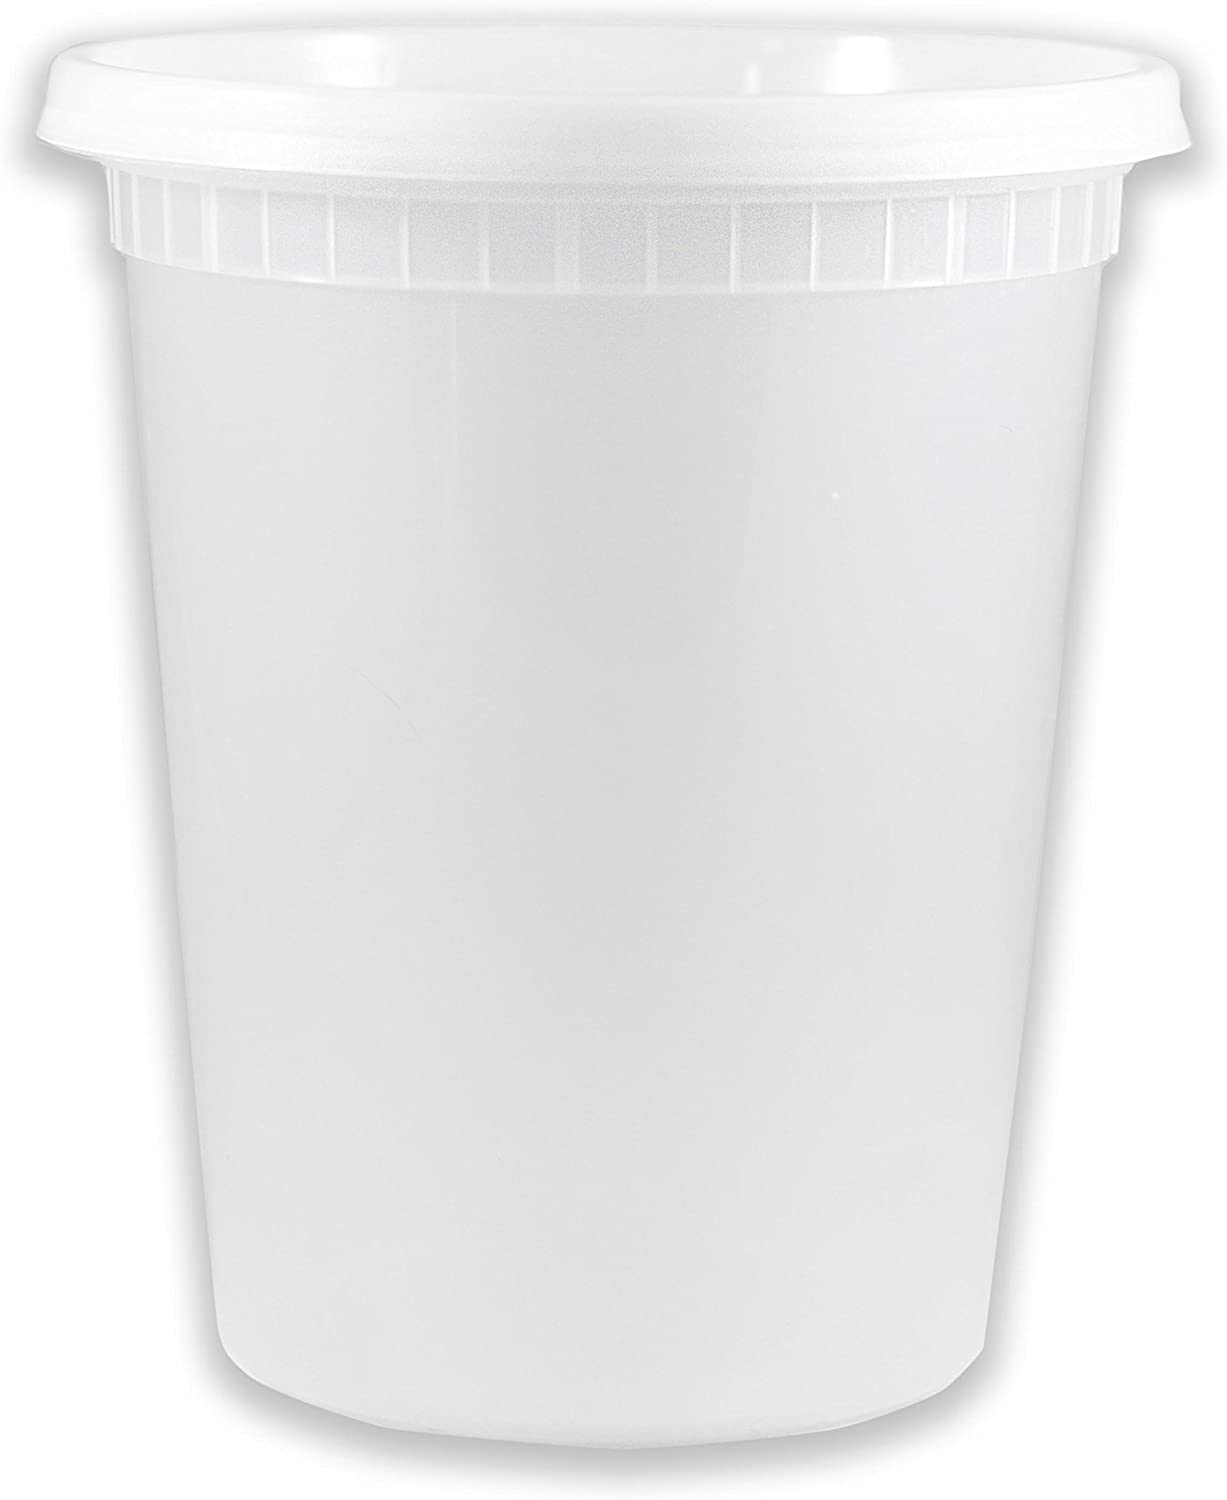 EDI 32 oz Deli 公式 Containers with Food Lids C Clear Plastic Storage 新商品!新型